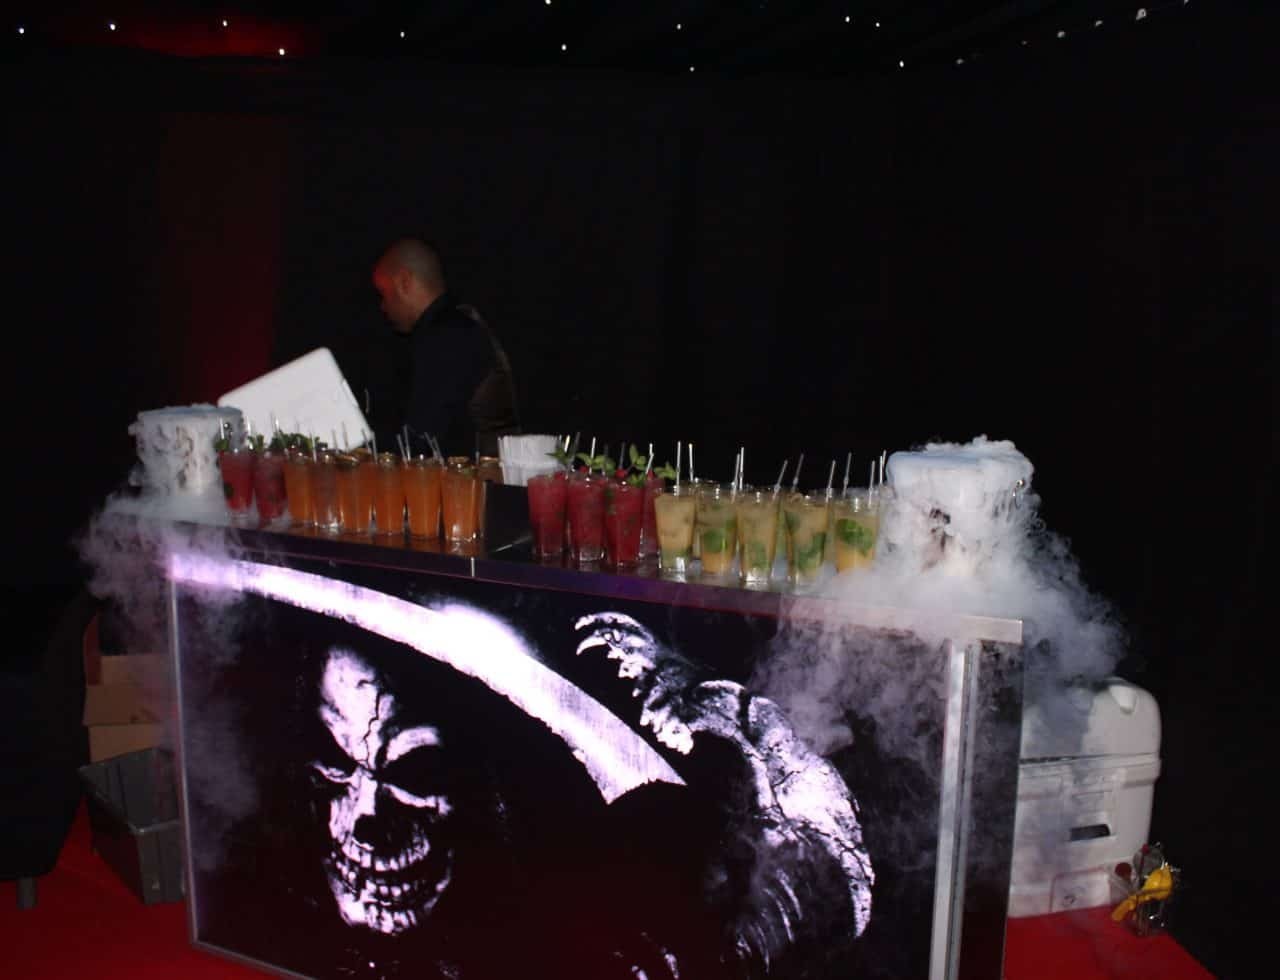 American Horror Story themed Bar design we created for our client.